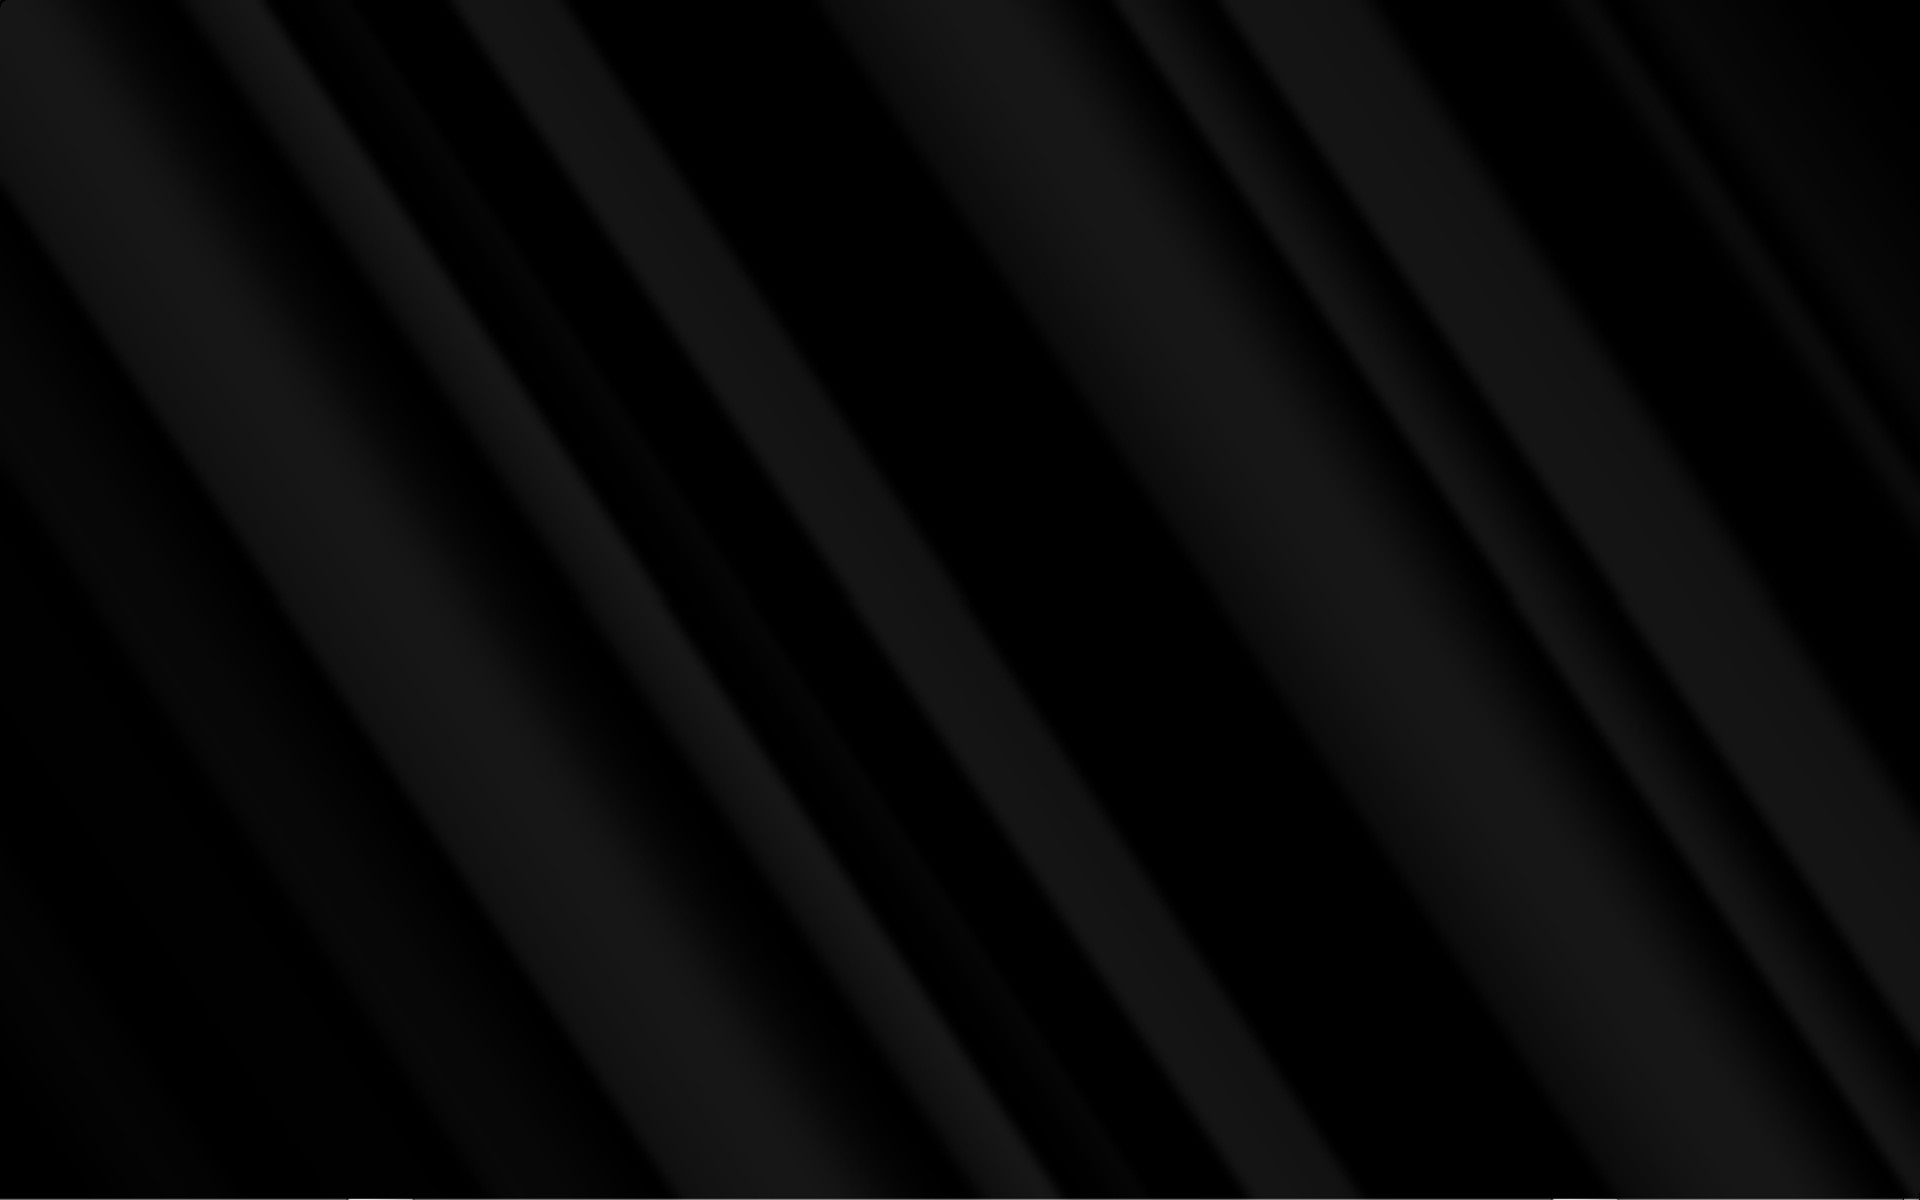 Plain Black Wallpaper For Android As Wallpaper HD